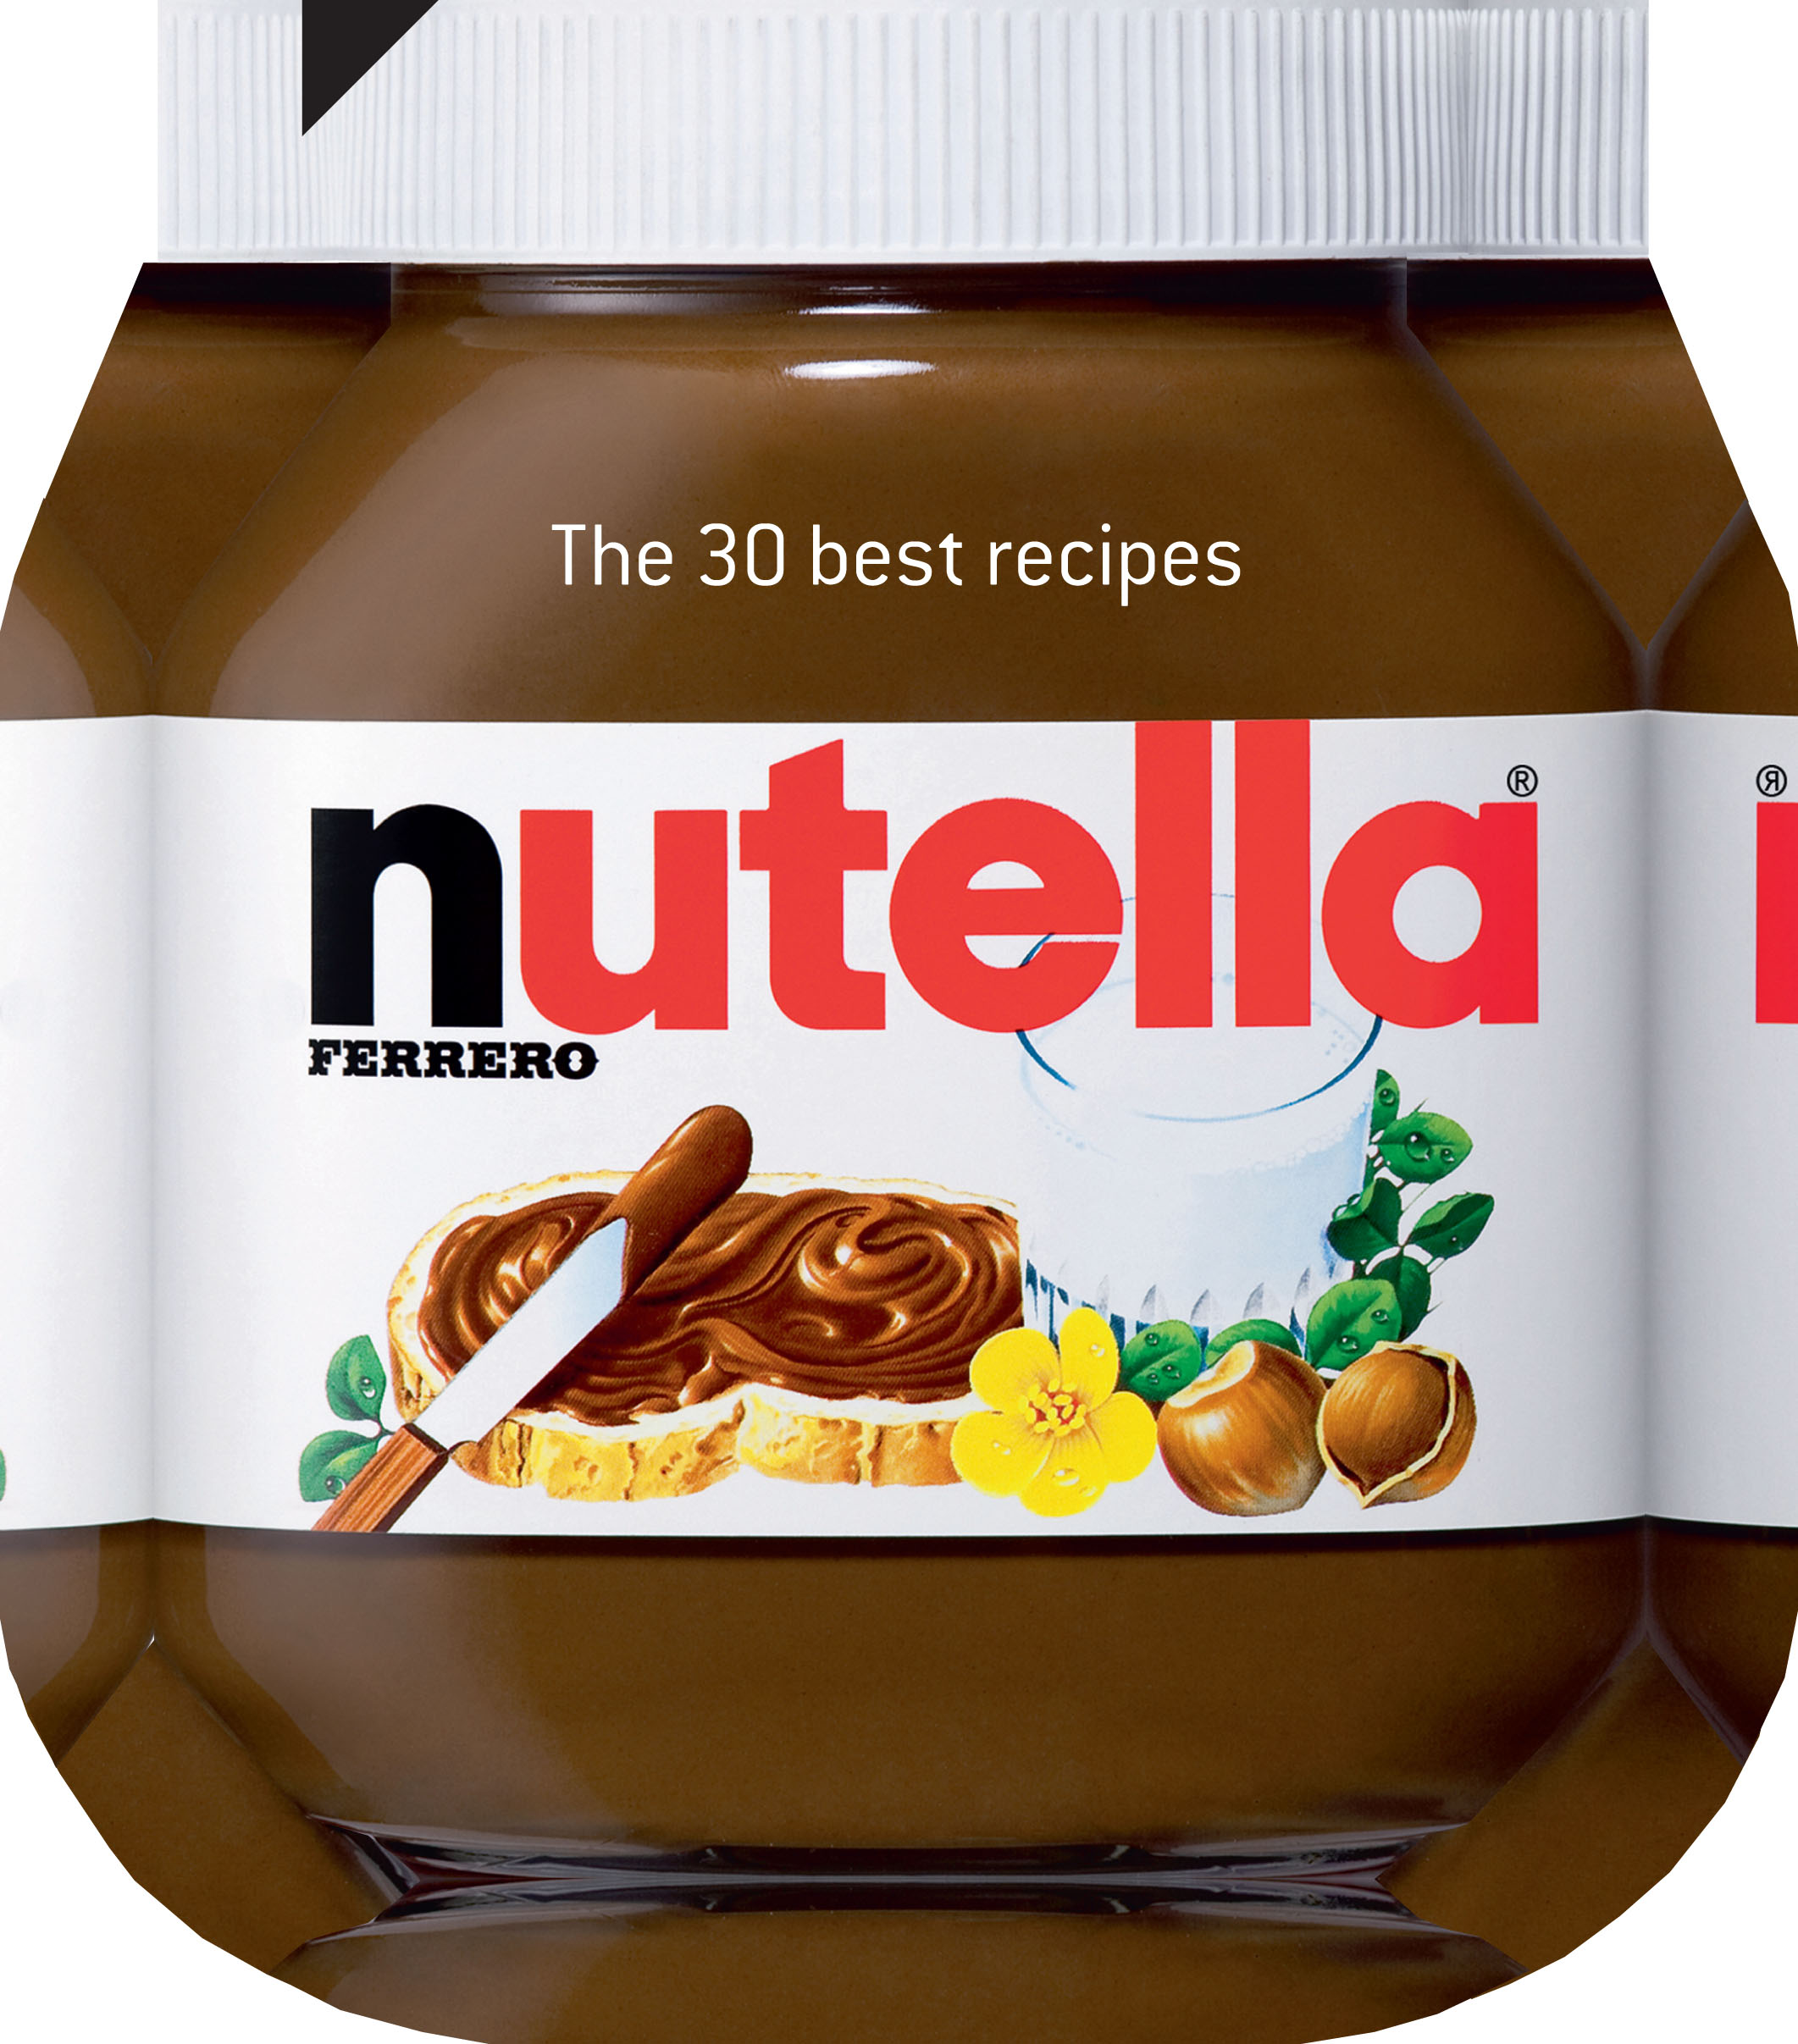 Review: Nutella: The 30 Best Recipes | Mutherfudger